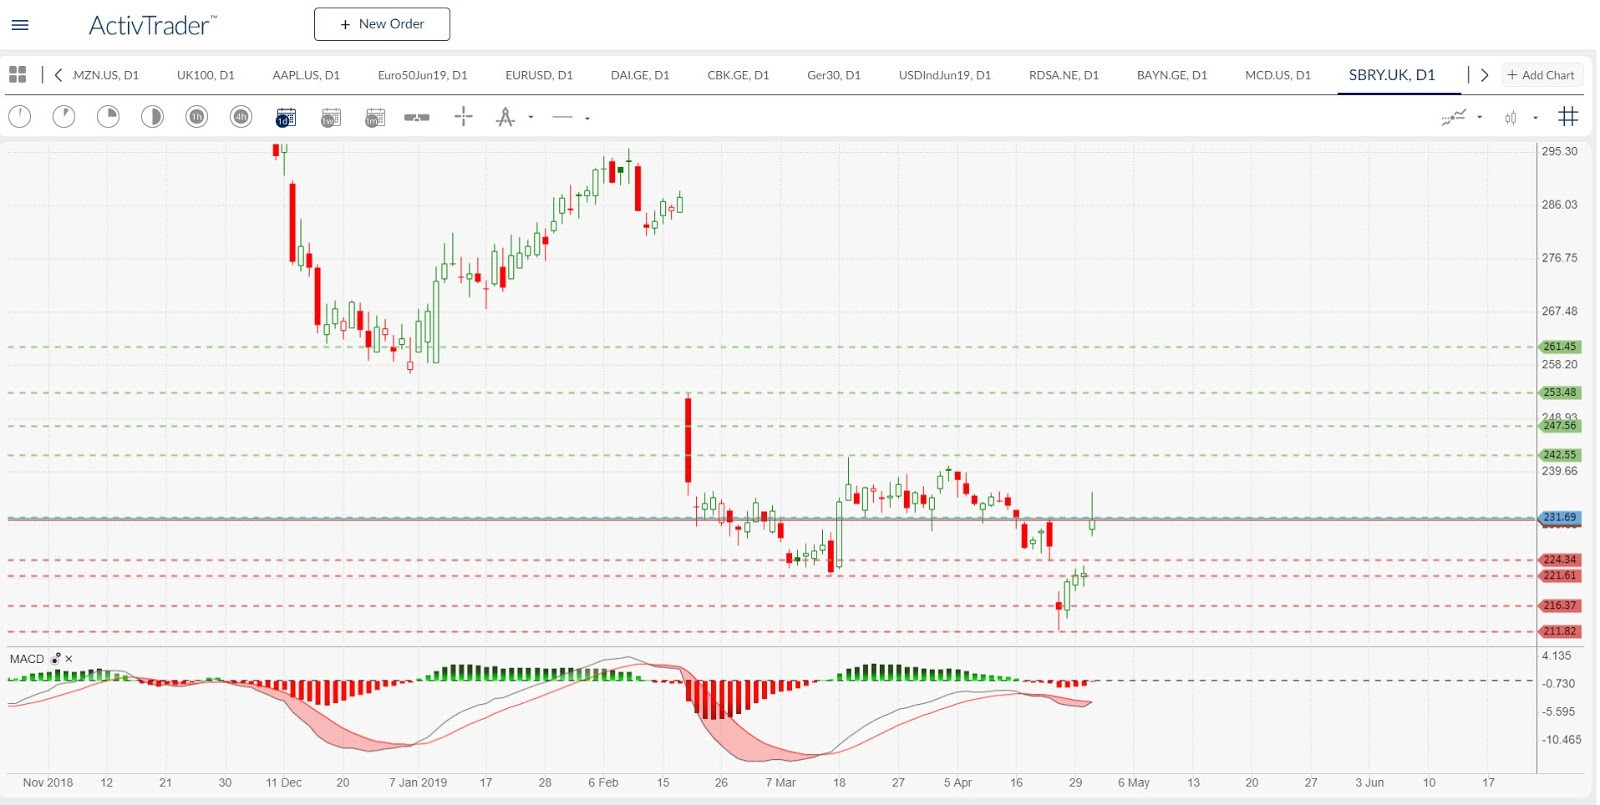 SBRY.UK - daily chart. Source: ActivTrader